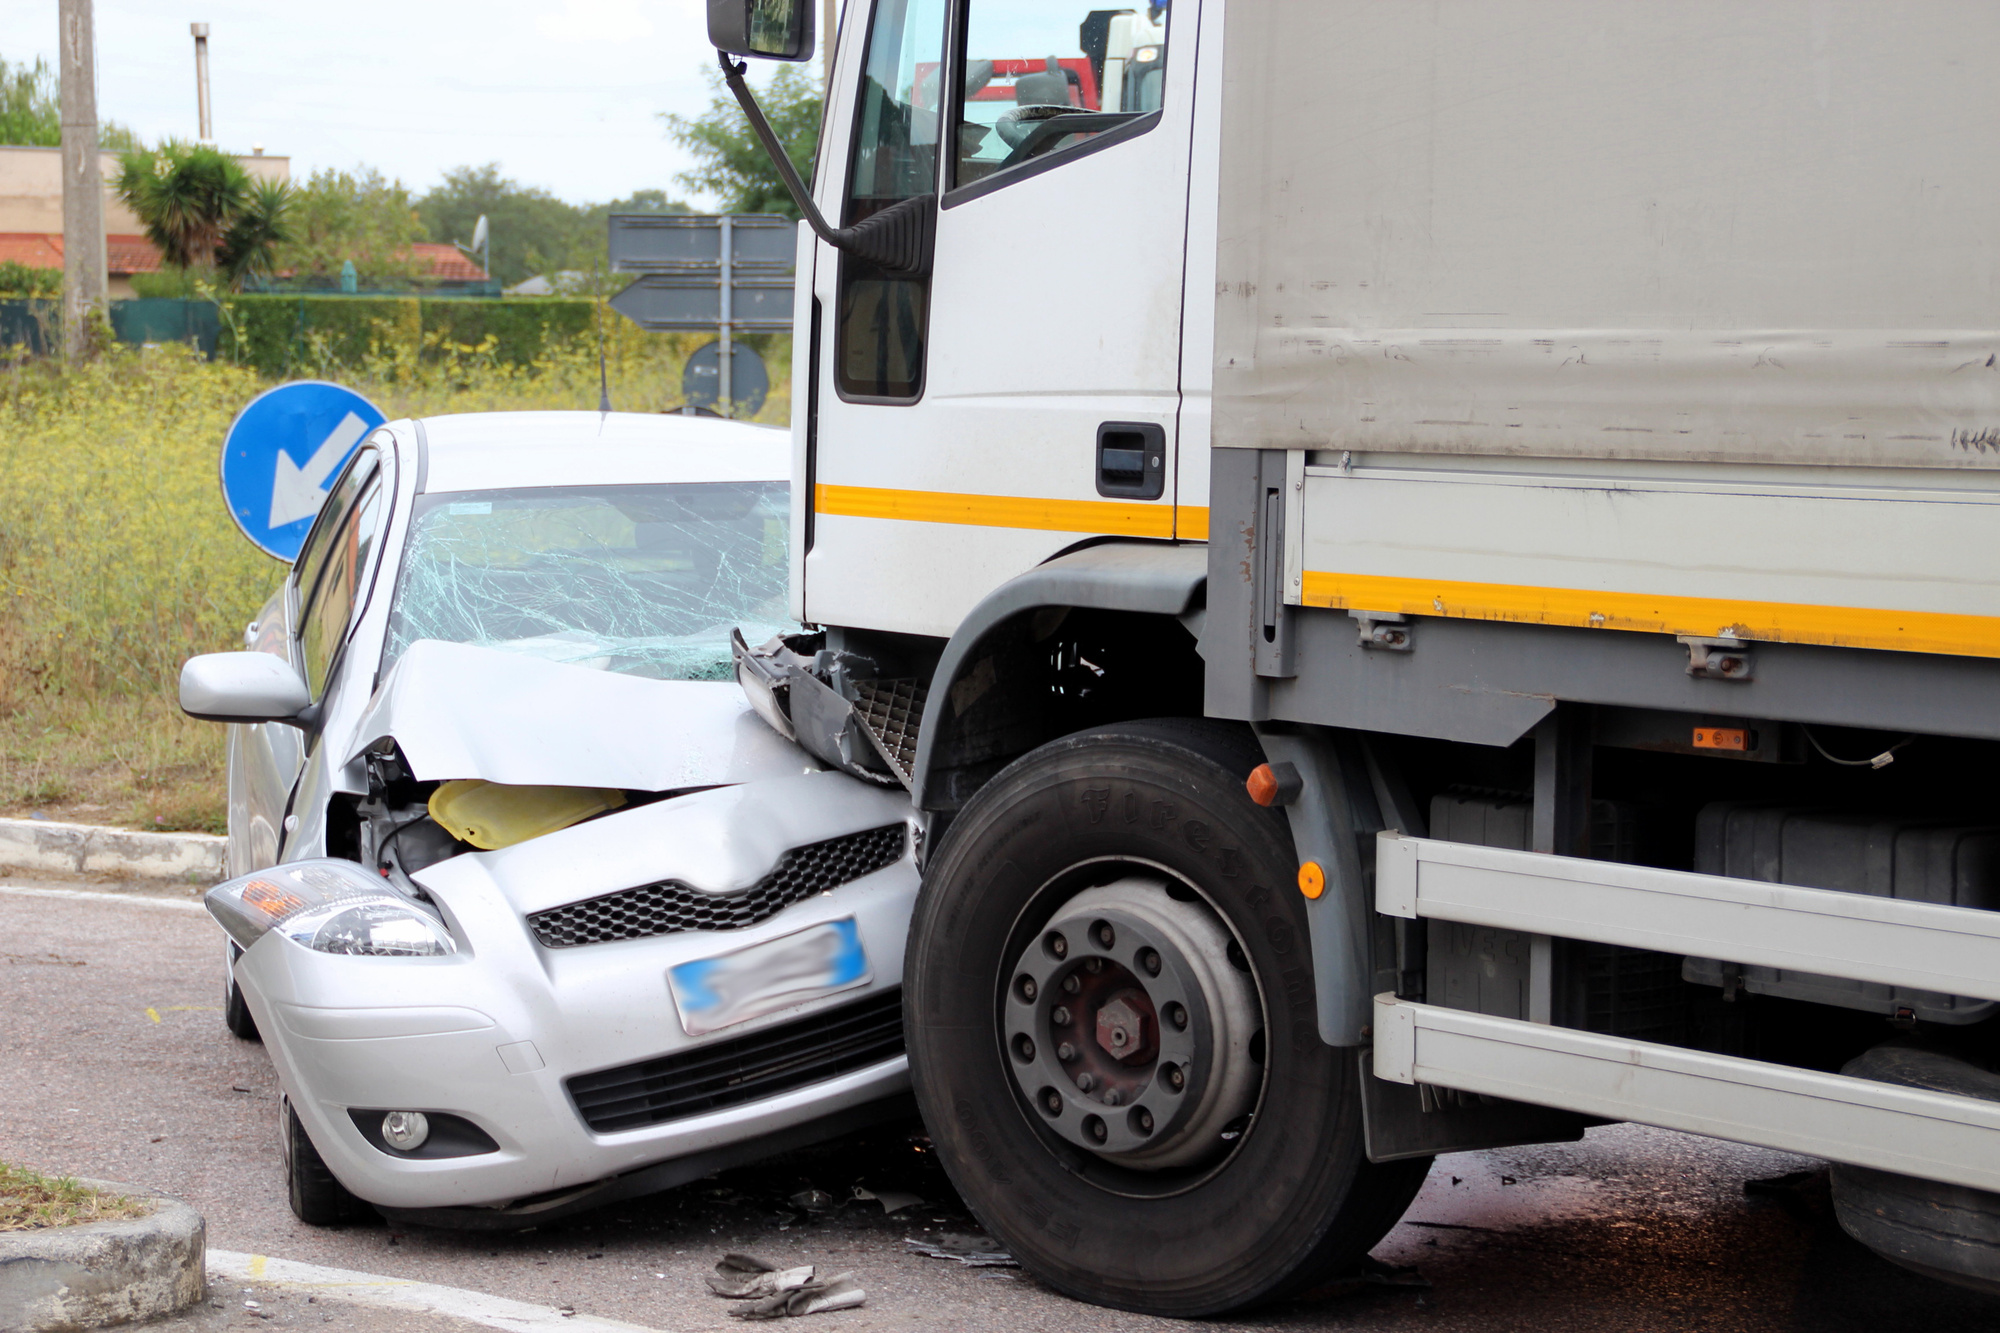 Swift Truck Accidents